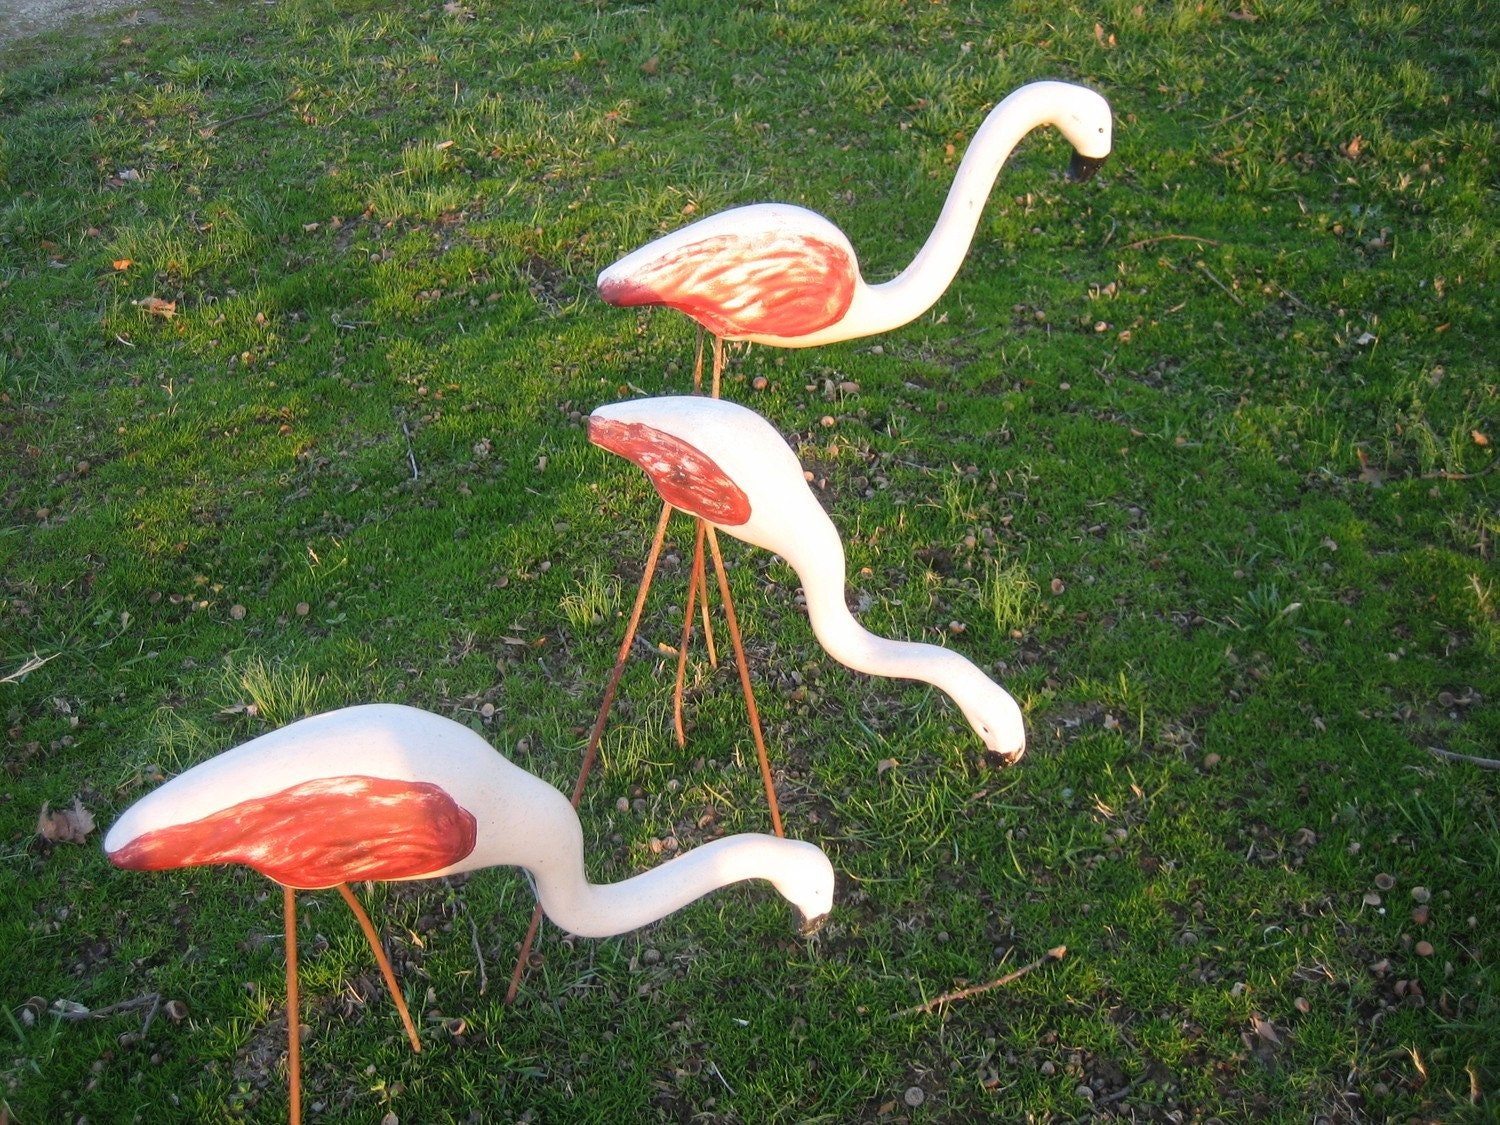 3 Vintage Pottery Yard Flamingos Pink With Legs Yard Ornament